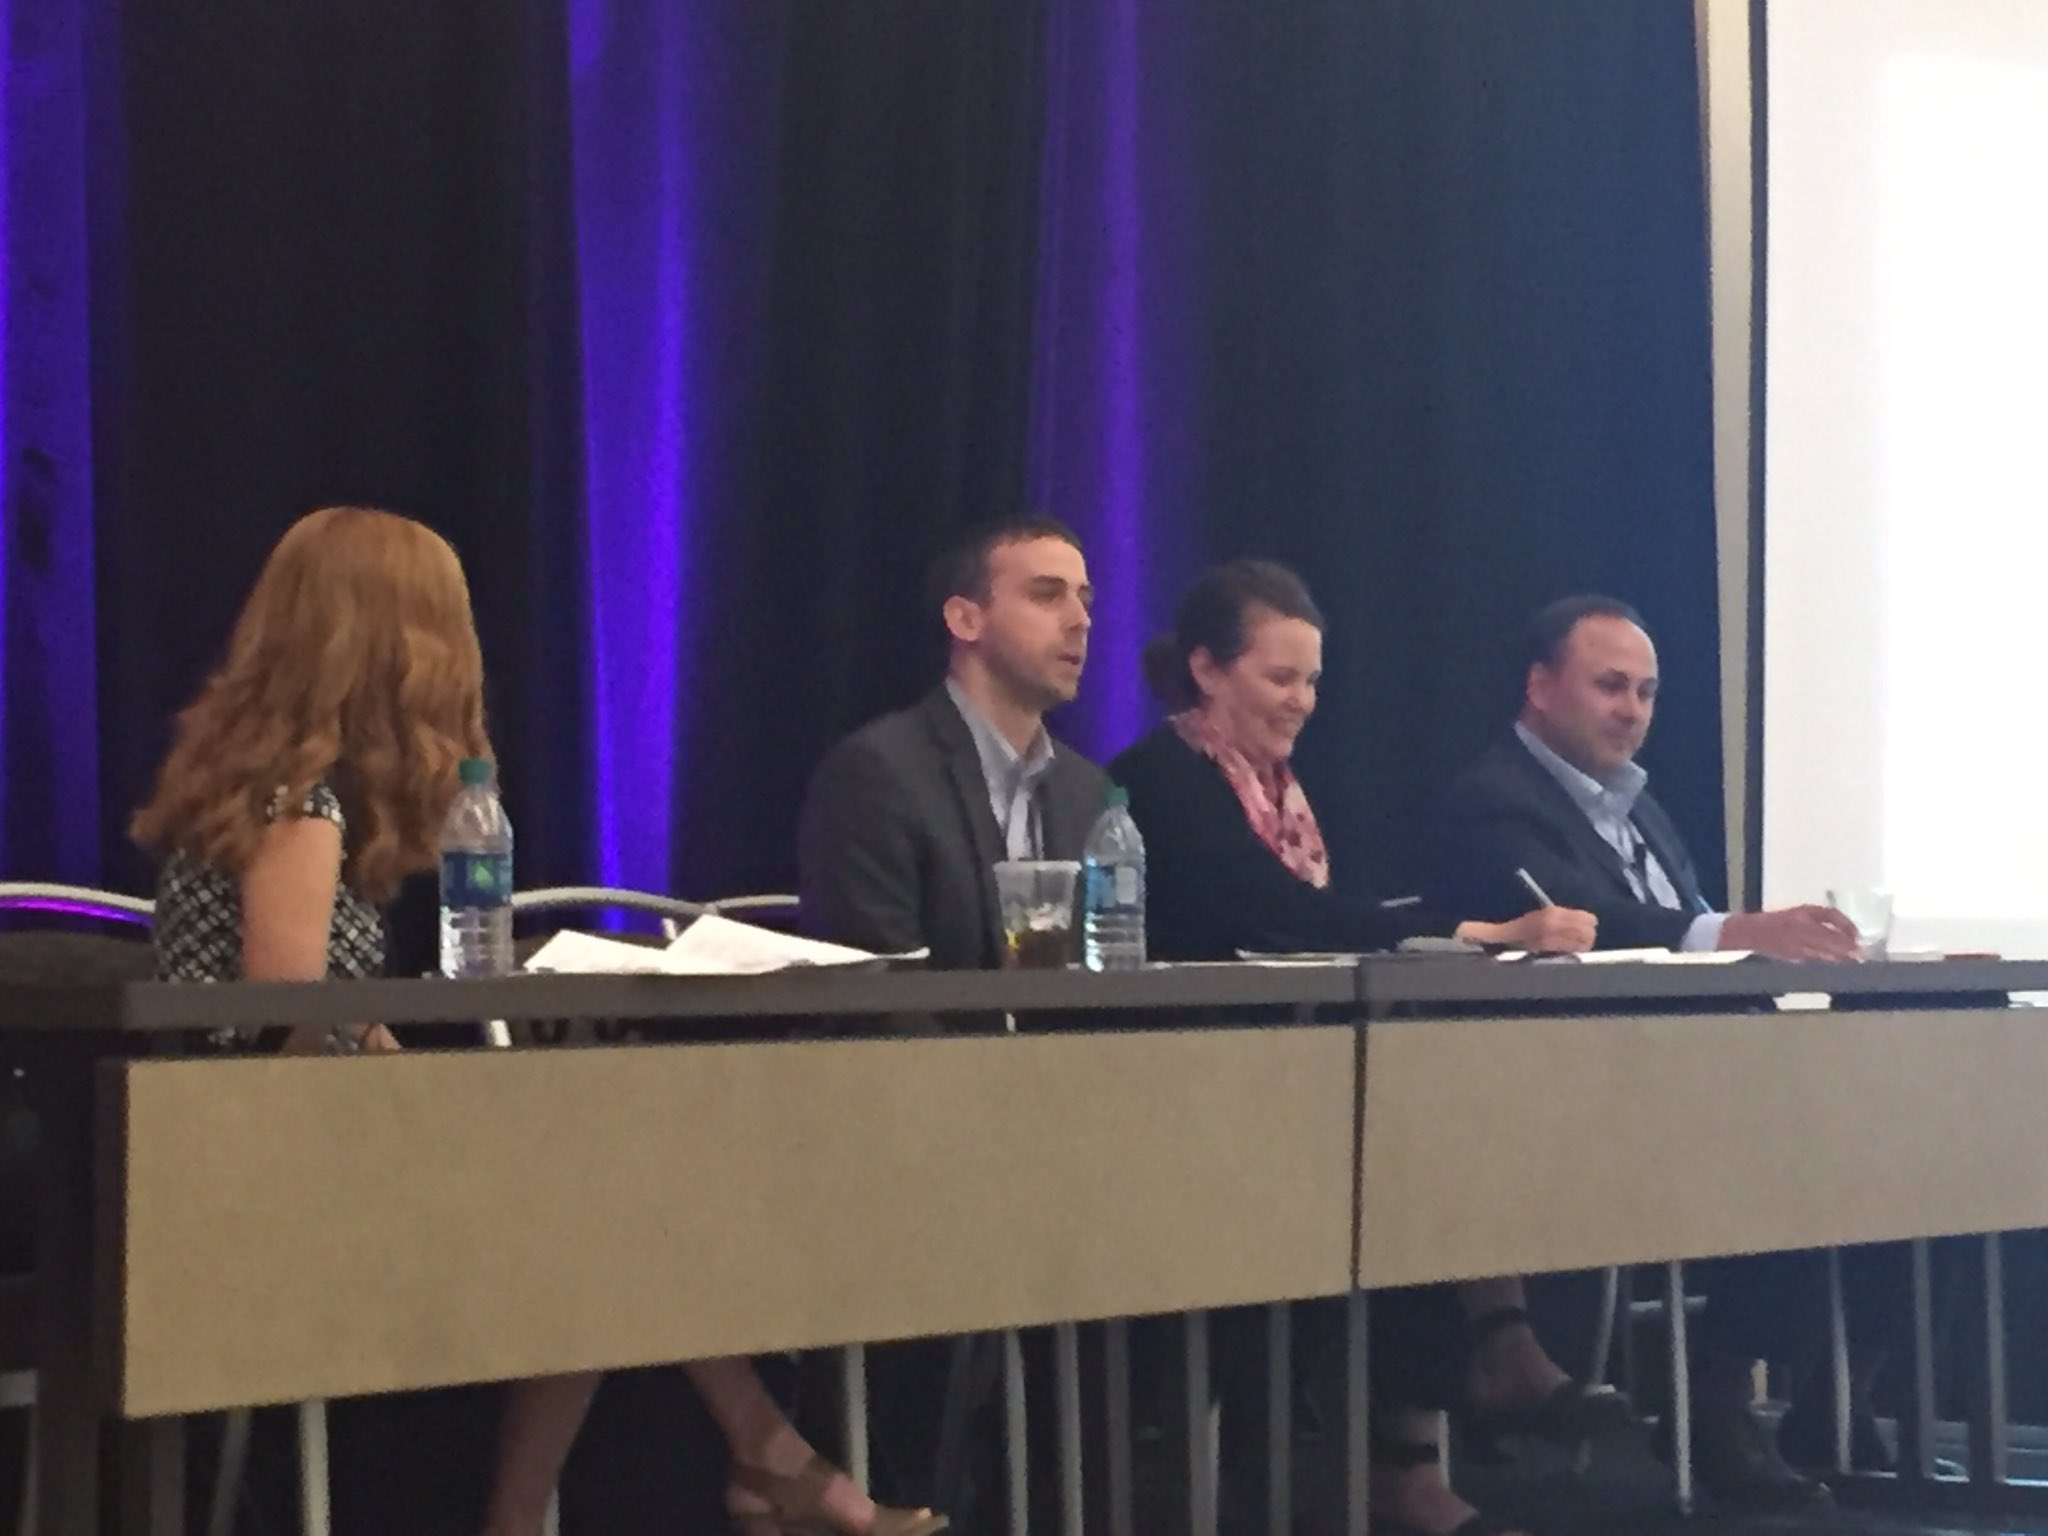 Kathleen Rapp discusses @IowaWestFdn partnering with @CBCommSchools to offer a summer camp enrichment program for 750 Ss. #CBatAAC #GLRWeek https://t.co/JR9T3Ey8jQ